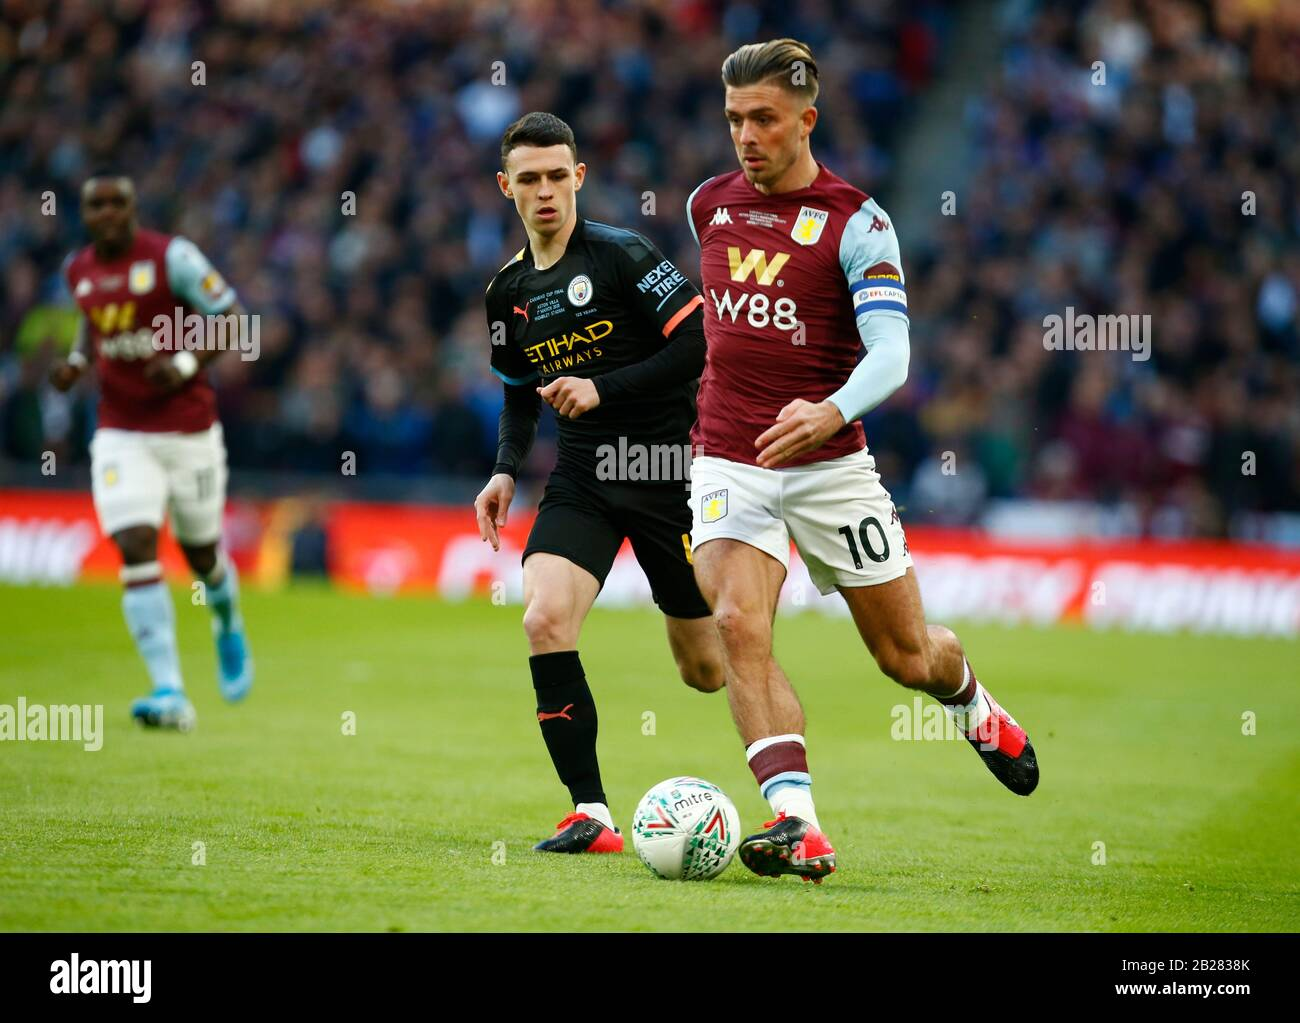 LONDON, UNITED KINGDOM. MARCH 01 Jack Grealish of Aston Villa during Carabao Cup Final between Aston Villa and Manchester City at Wembley Stadium, London, England on 01 March 2020 Credit: Action Foto Sport/Alamy Live News Stock Photo